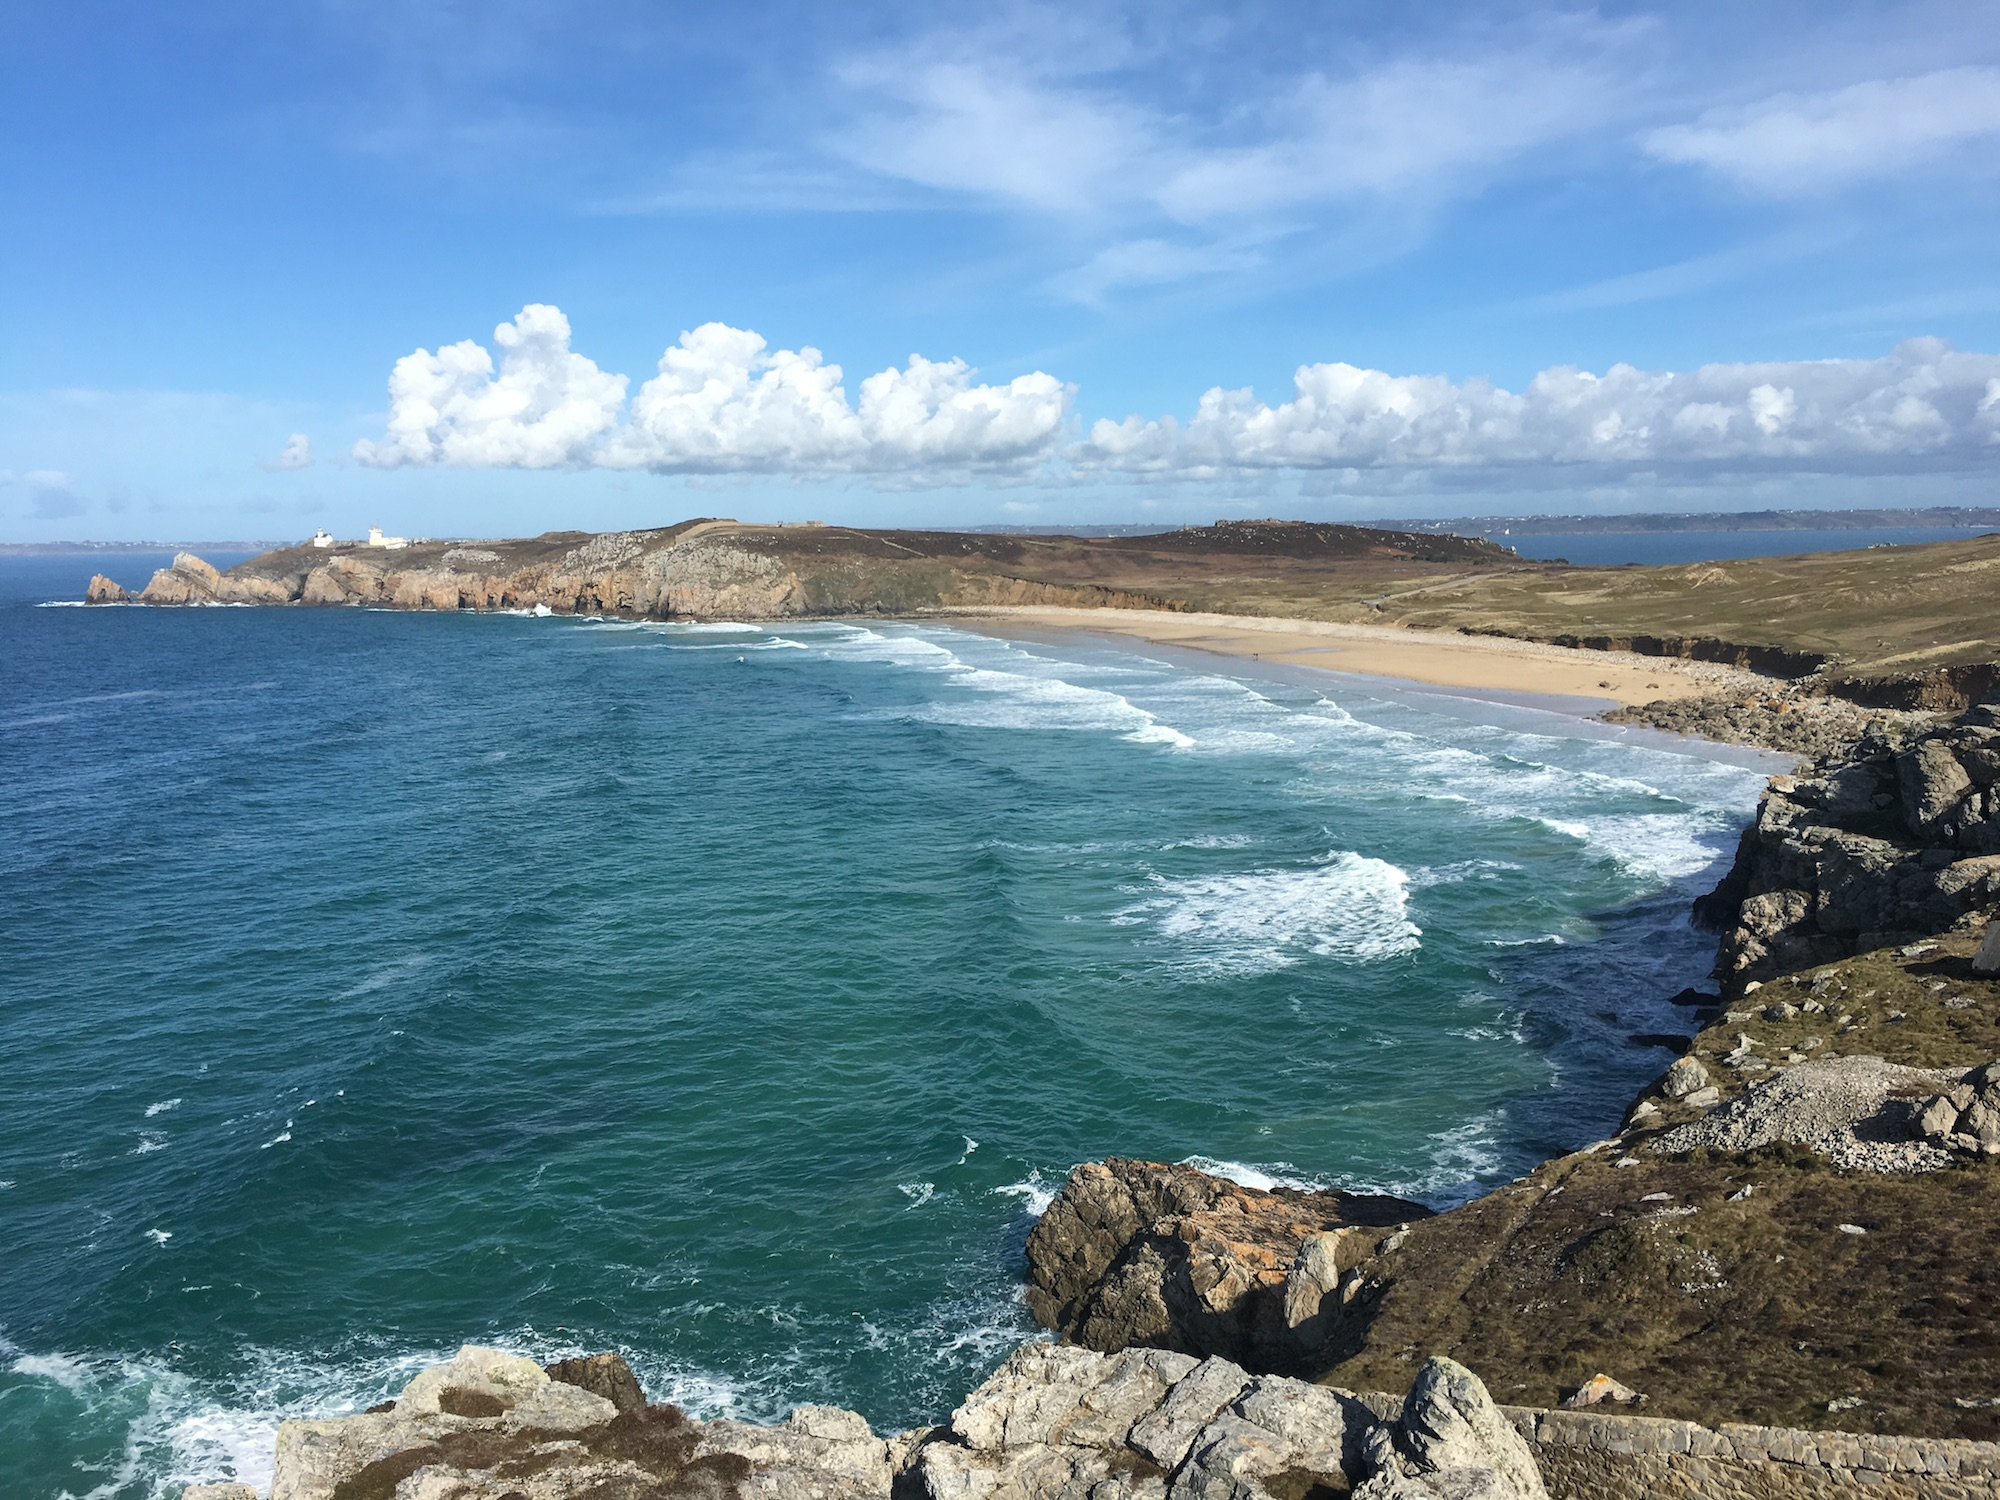 Some of France's most beautiful beaches are in Brittany, like this long sandy beach with turquoise waters.